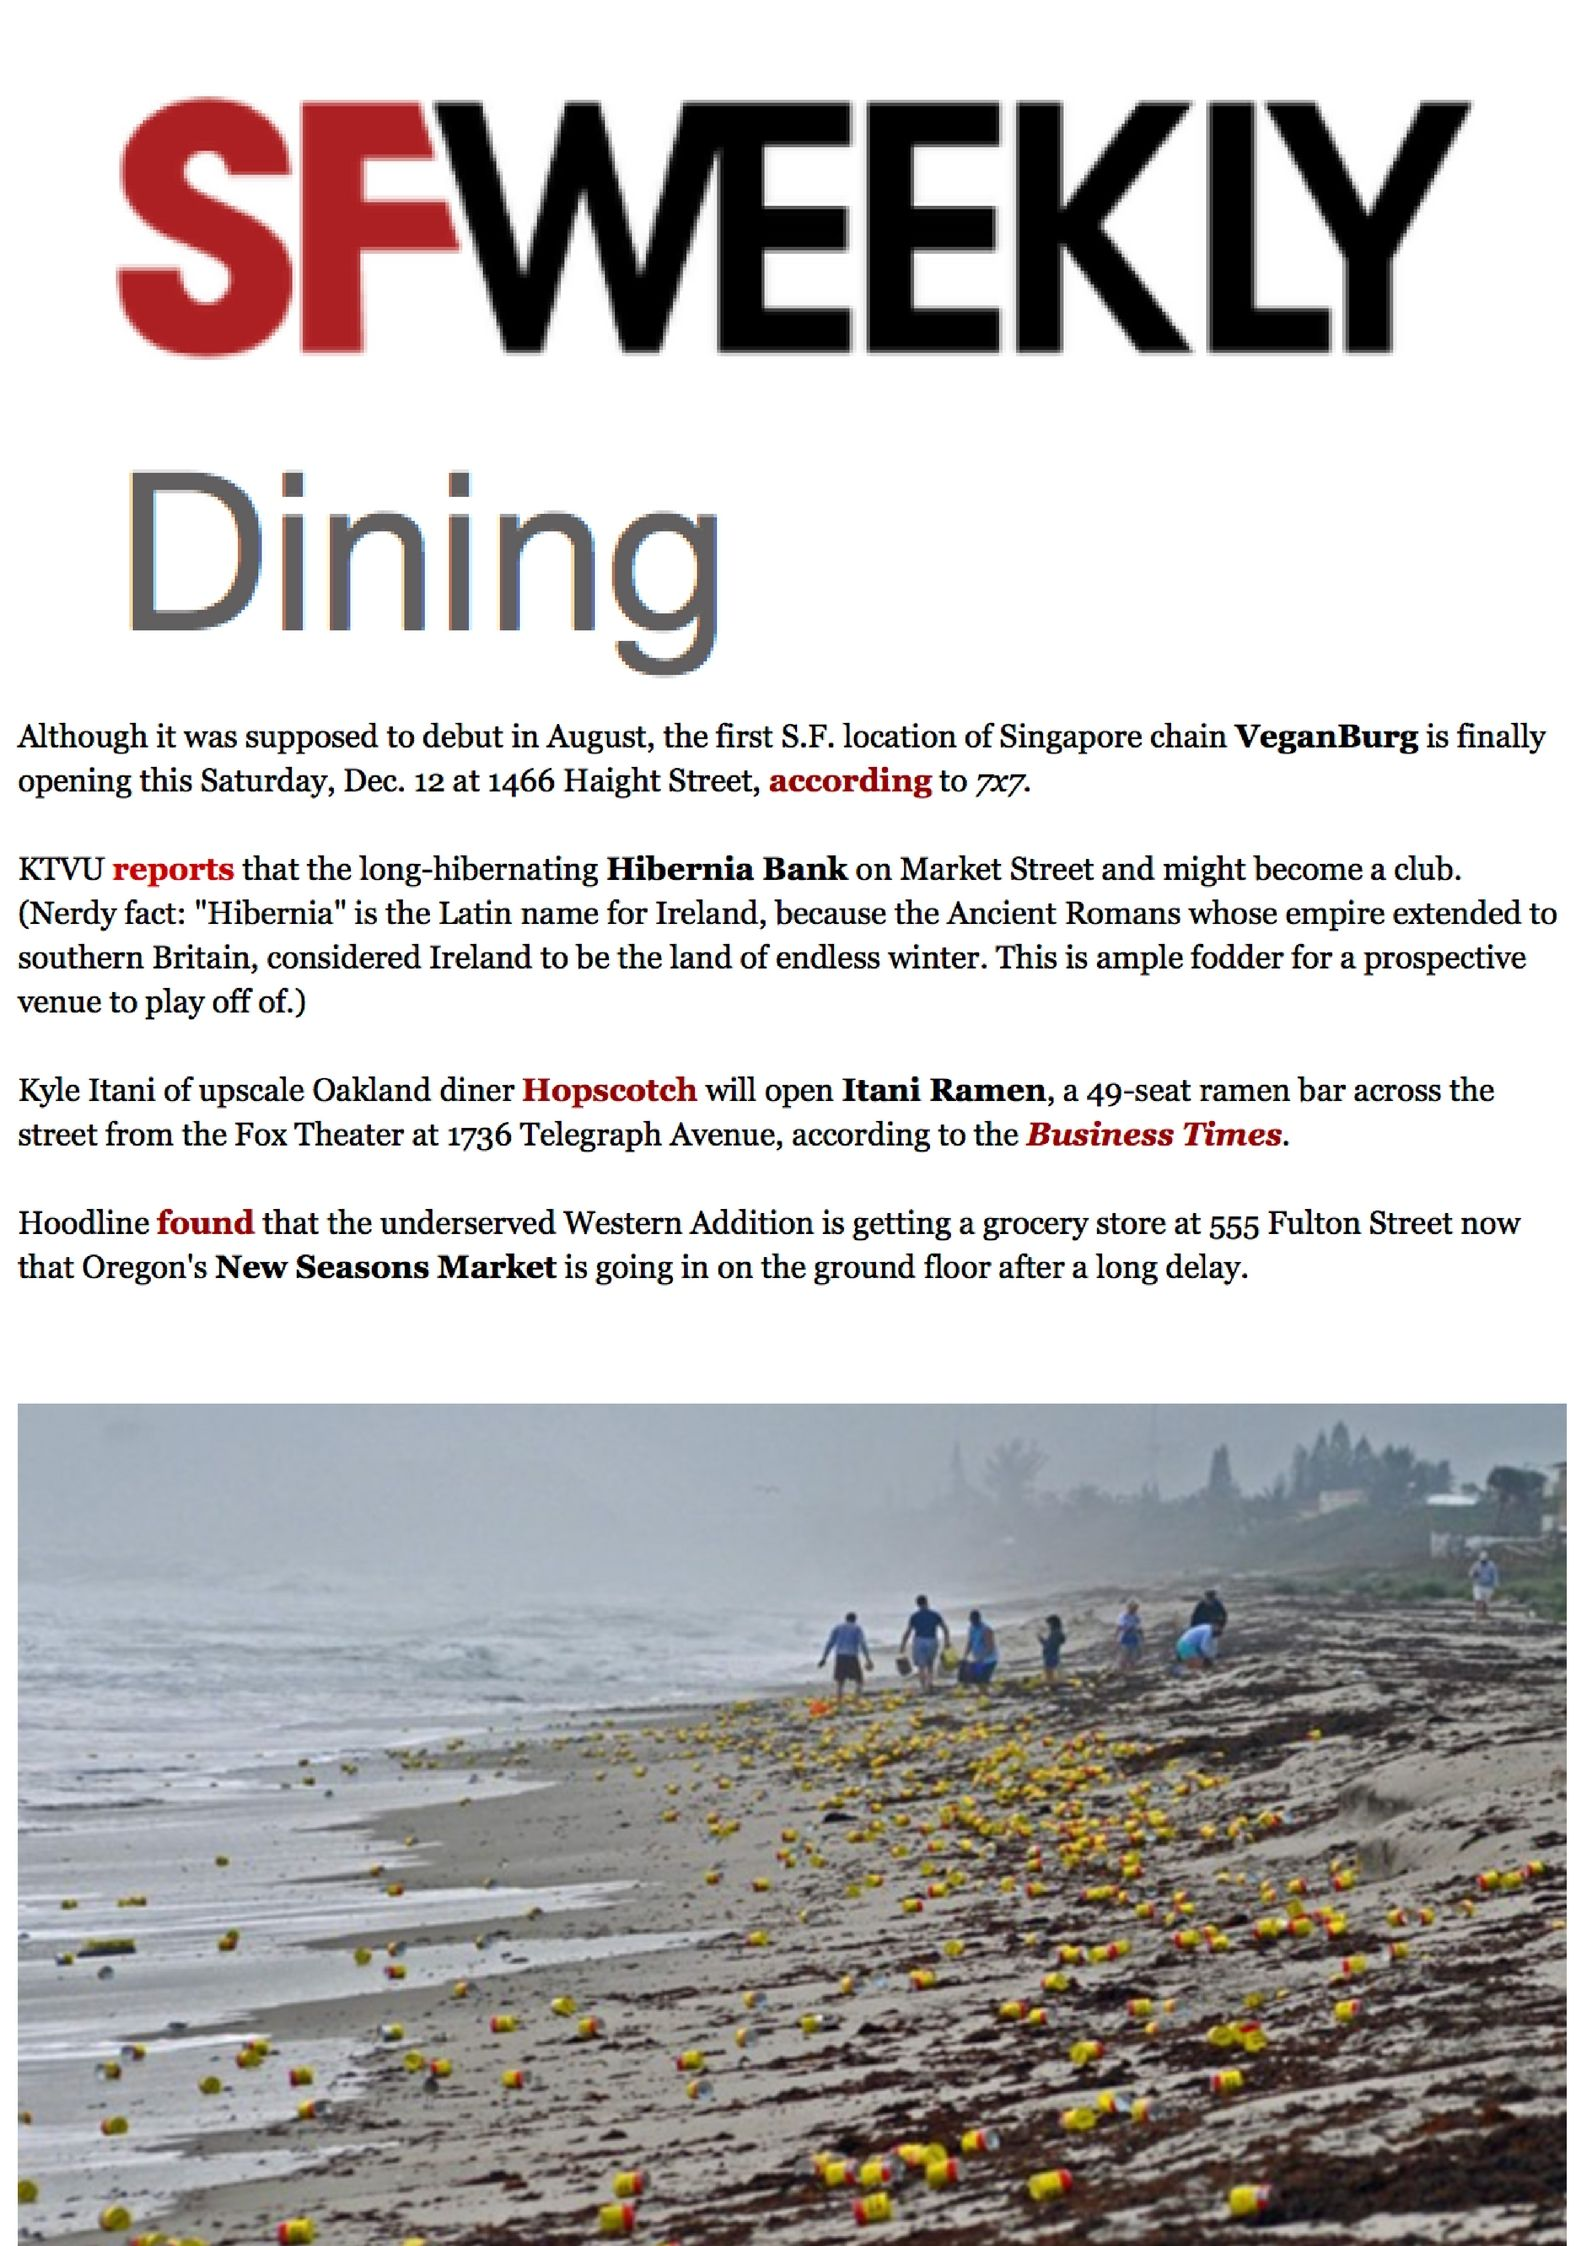 SF Weekly Dining_ Wednesday Four_ Openings, Openings, Openings.jpg